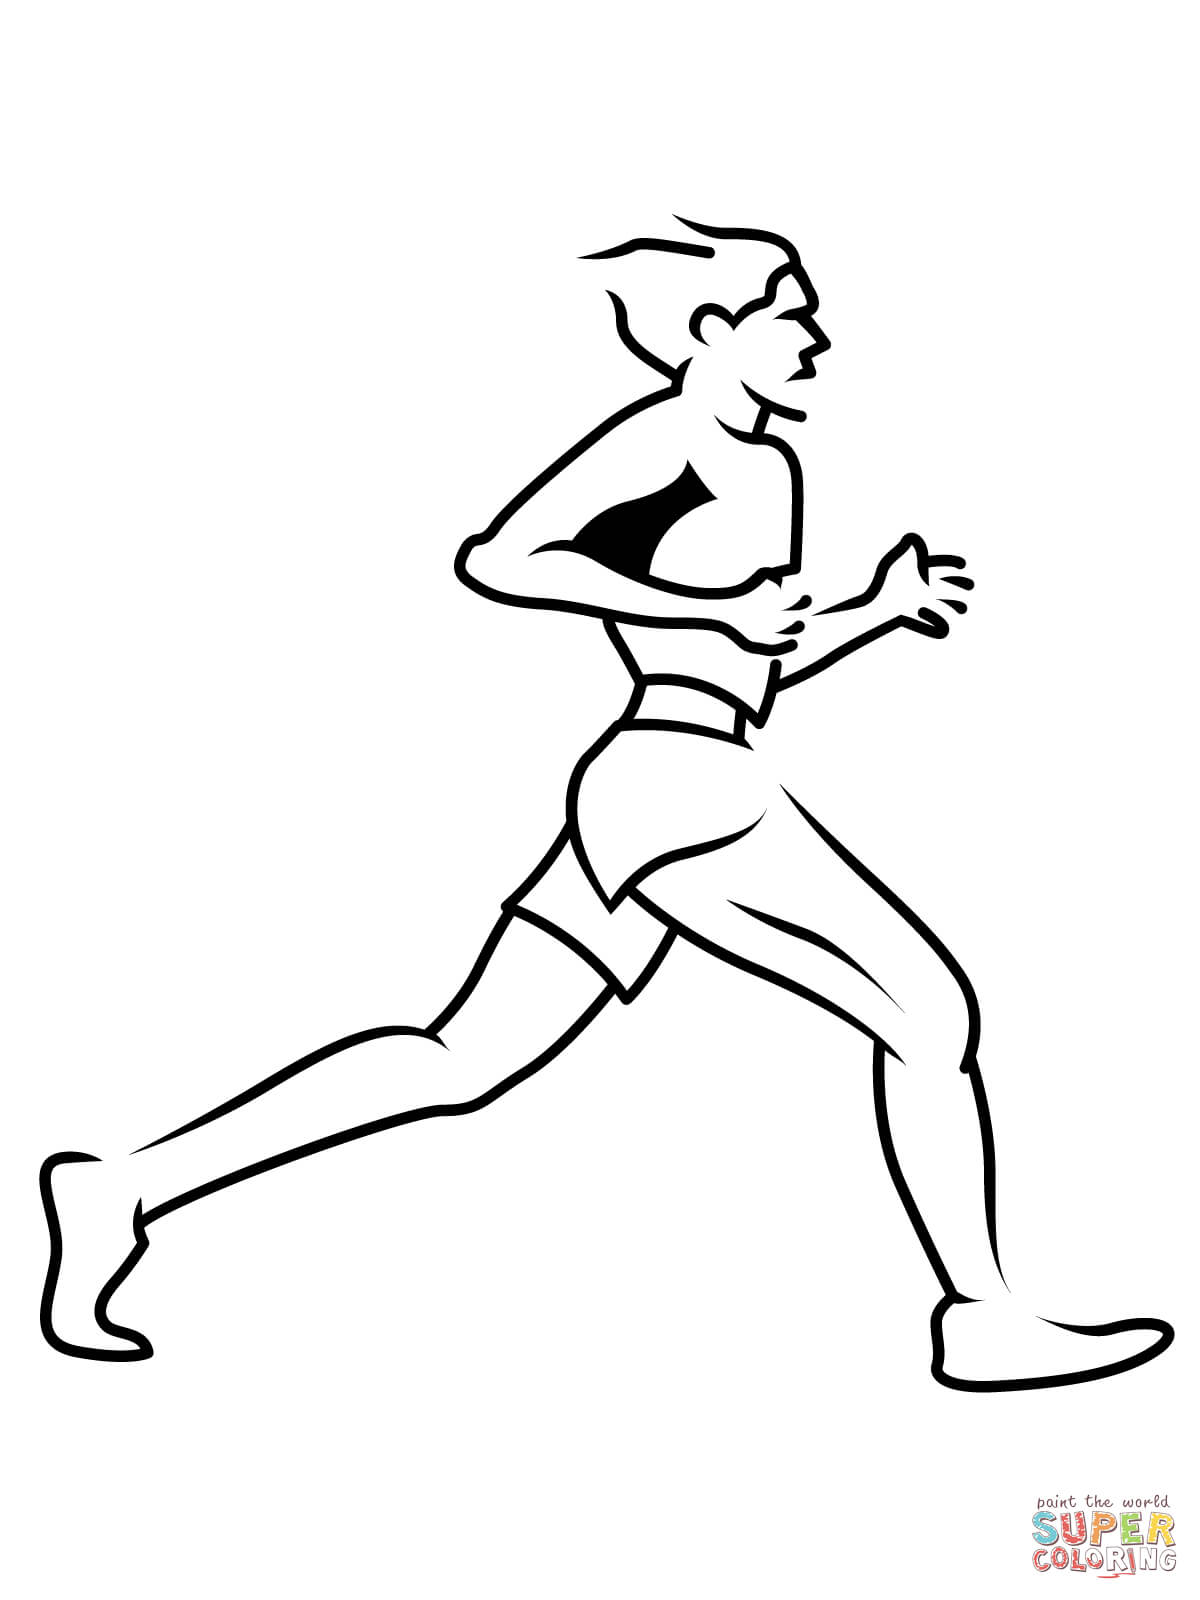 1200x1600 Short Runner Coloring Page Free Printable Coloring Pages